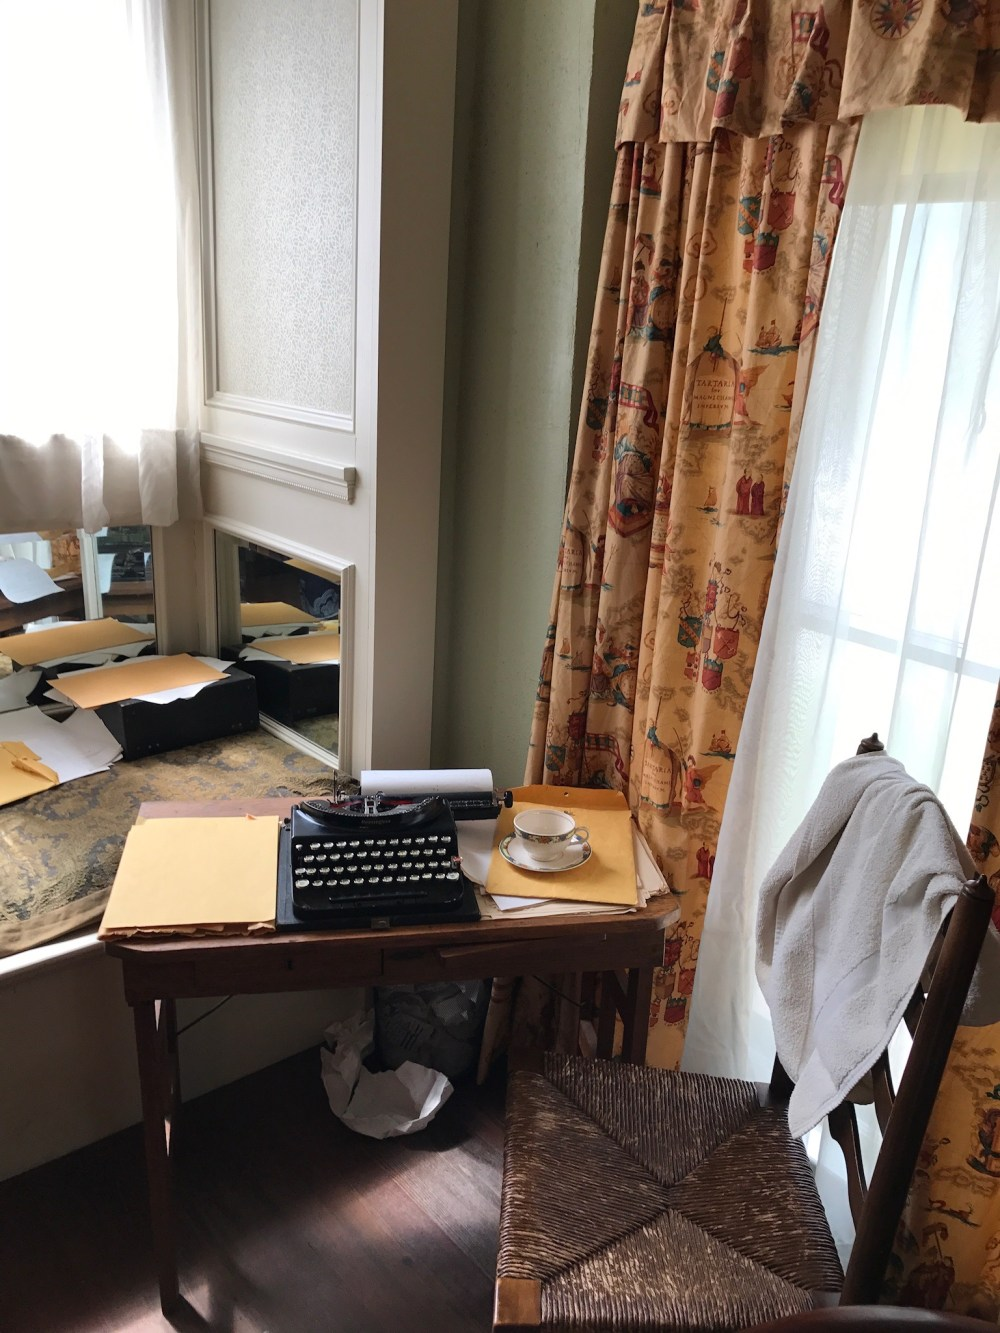 Margaret Mitchell's Gone With The Wind Typewriter